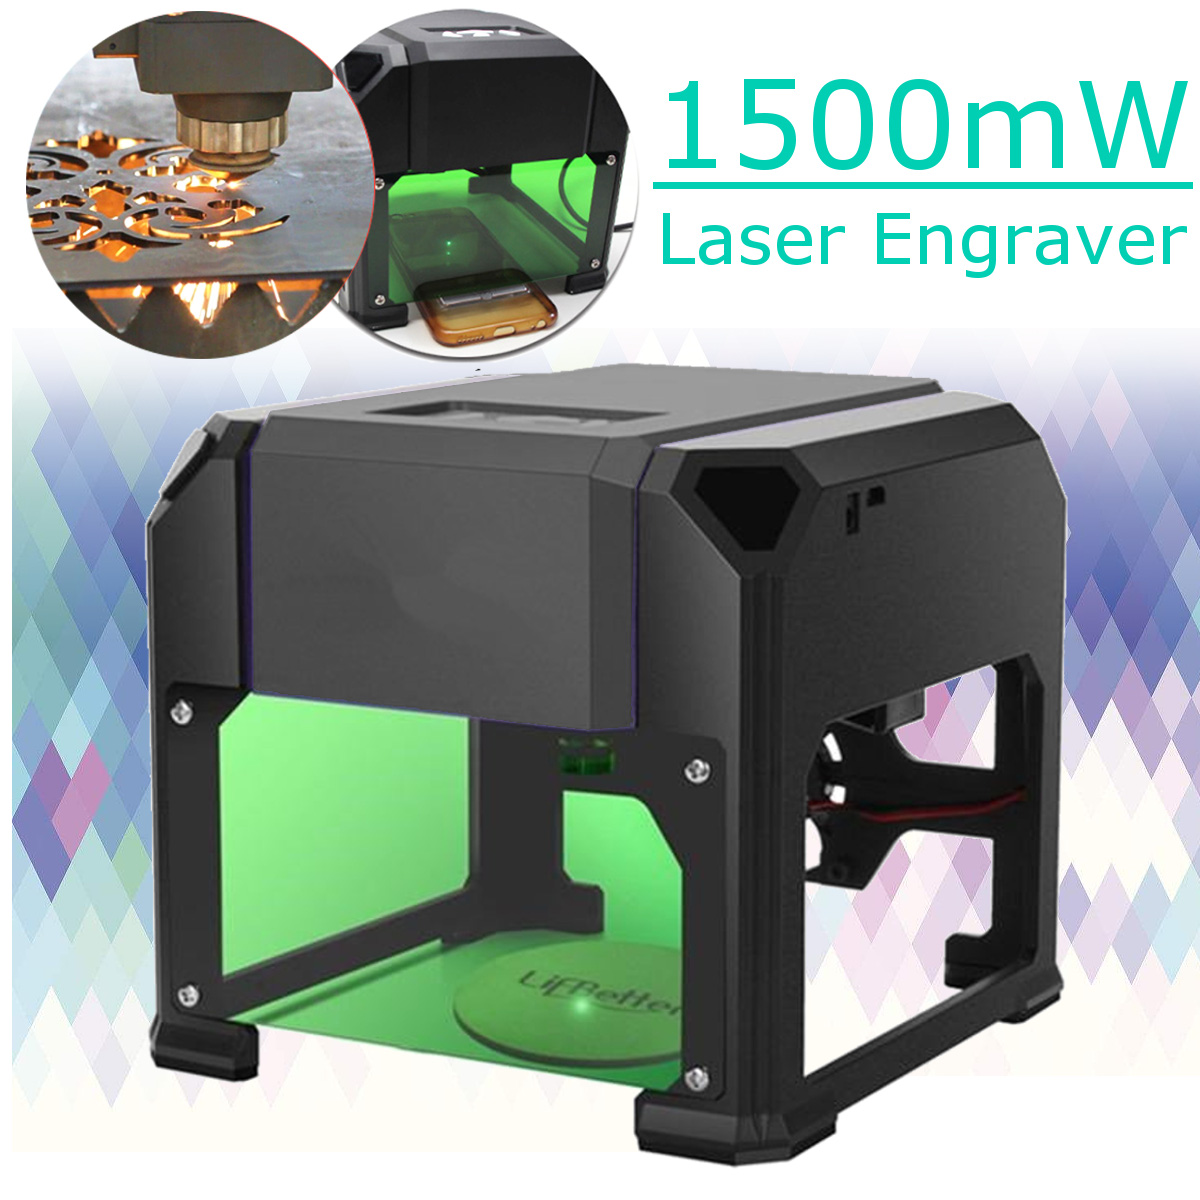 1500mw USB Desktop Laser Engraving Machine DIY Logo Marking Engraver CNC Laser Carving Machine 80x80mm Engraving Range emax f3 magnum mini fpv stack tower system flight controller 4in1 esc all in one for micro fpv racing quadcopter drone diy